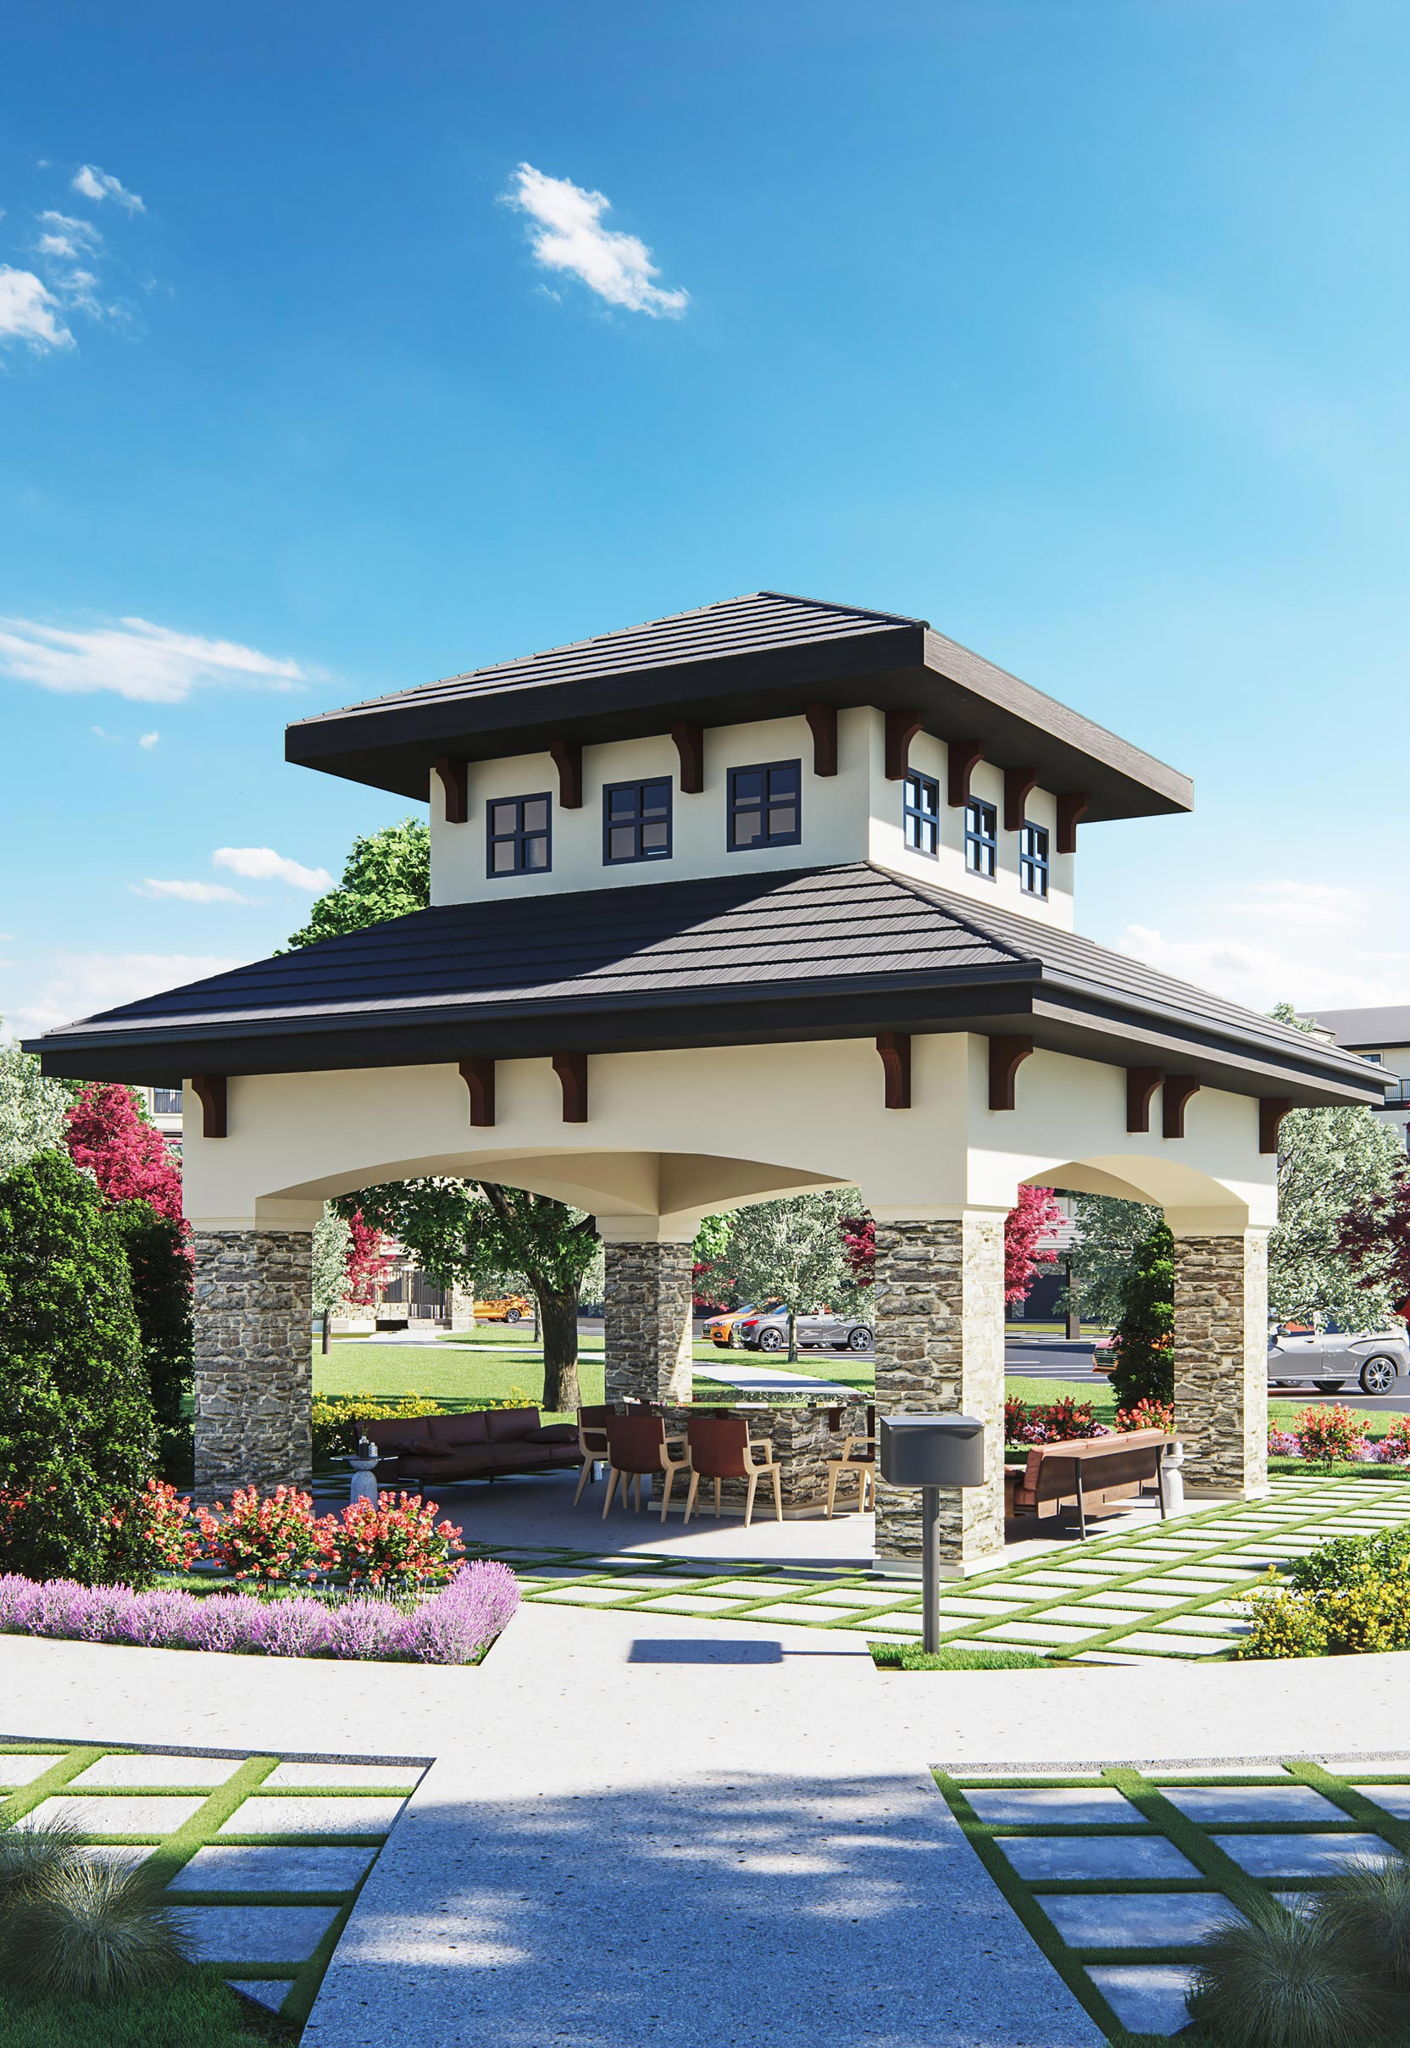 Gazebo lounge area with fireplace | The Villas at Ridgeview Falls